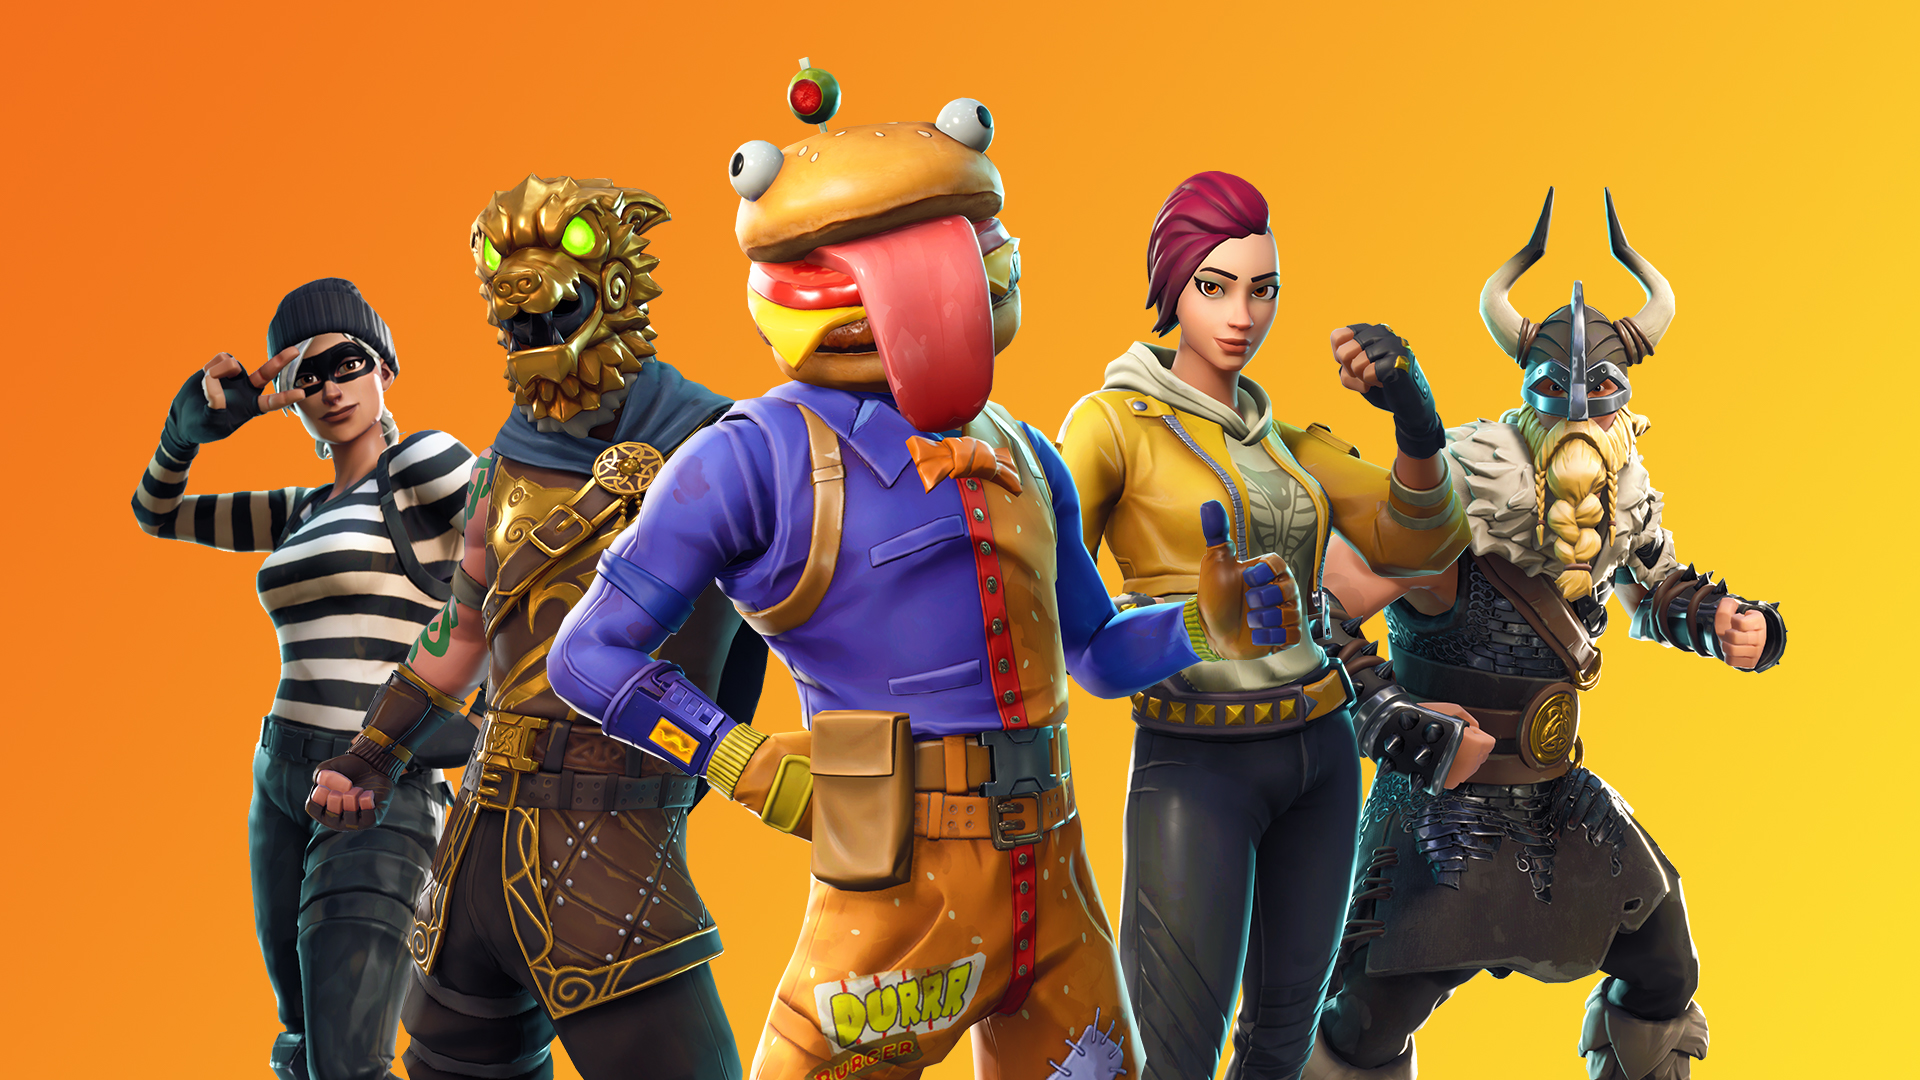 fortnite - juguetes de fortnite originales de epic games